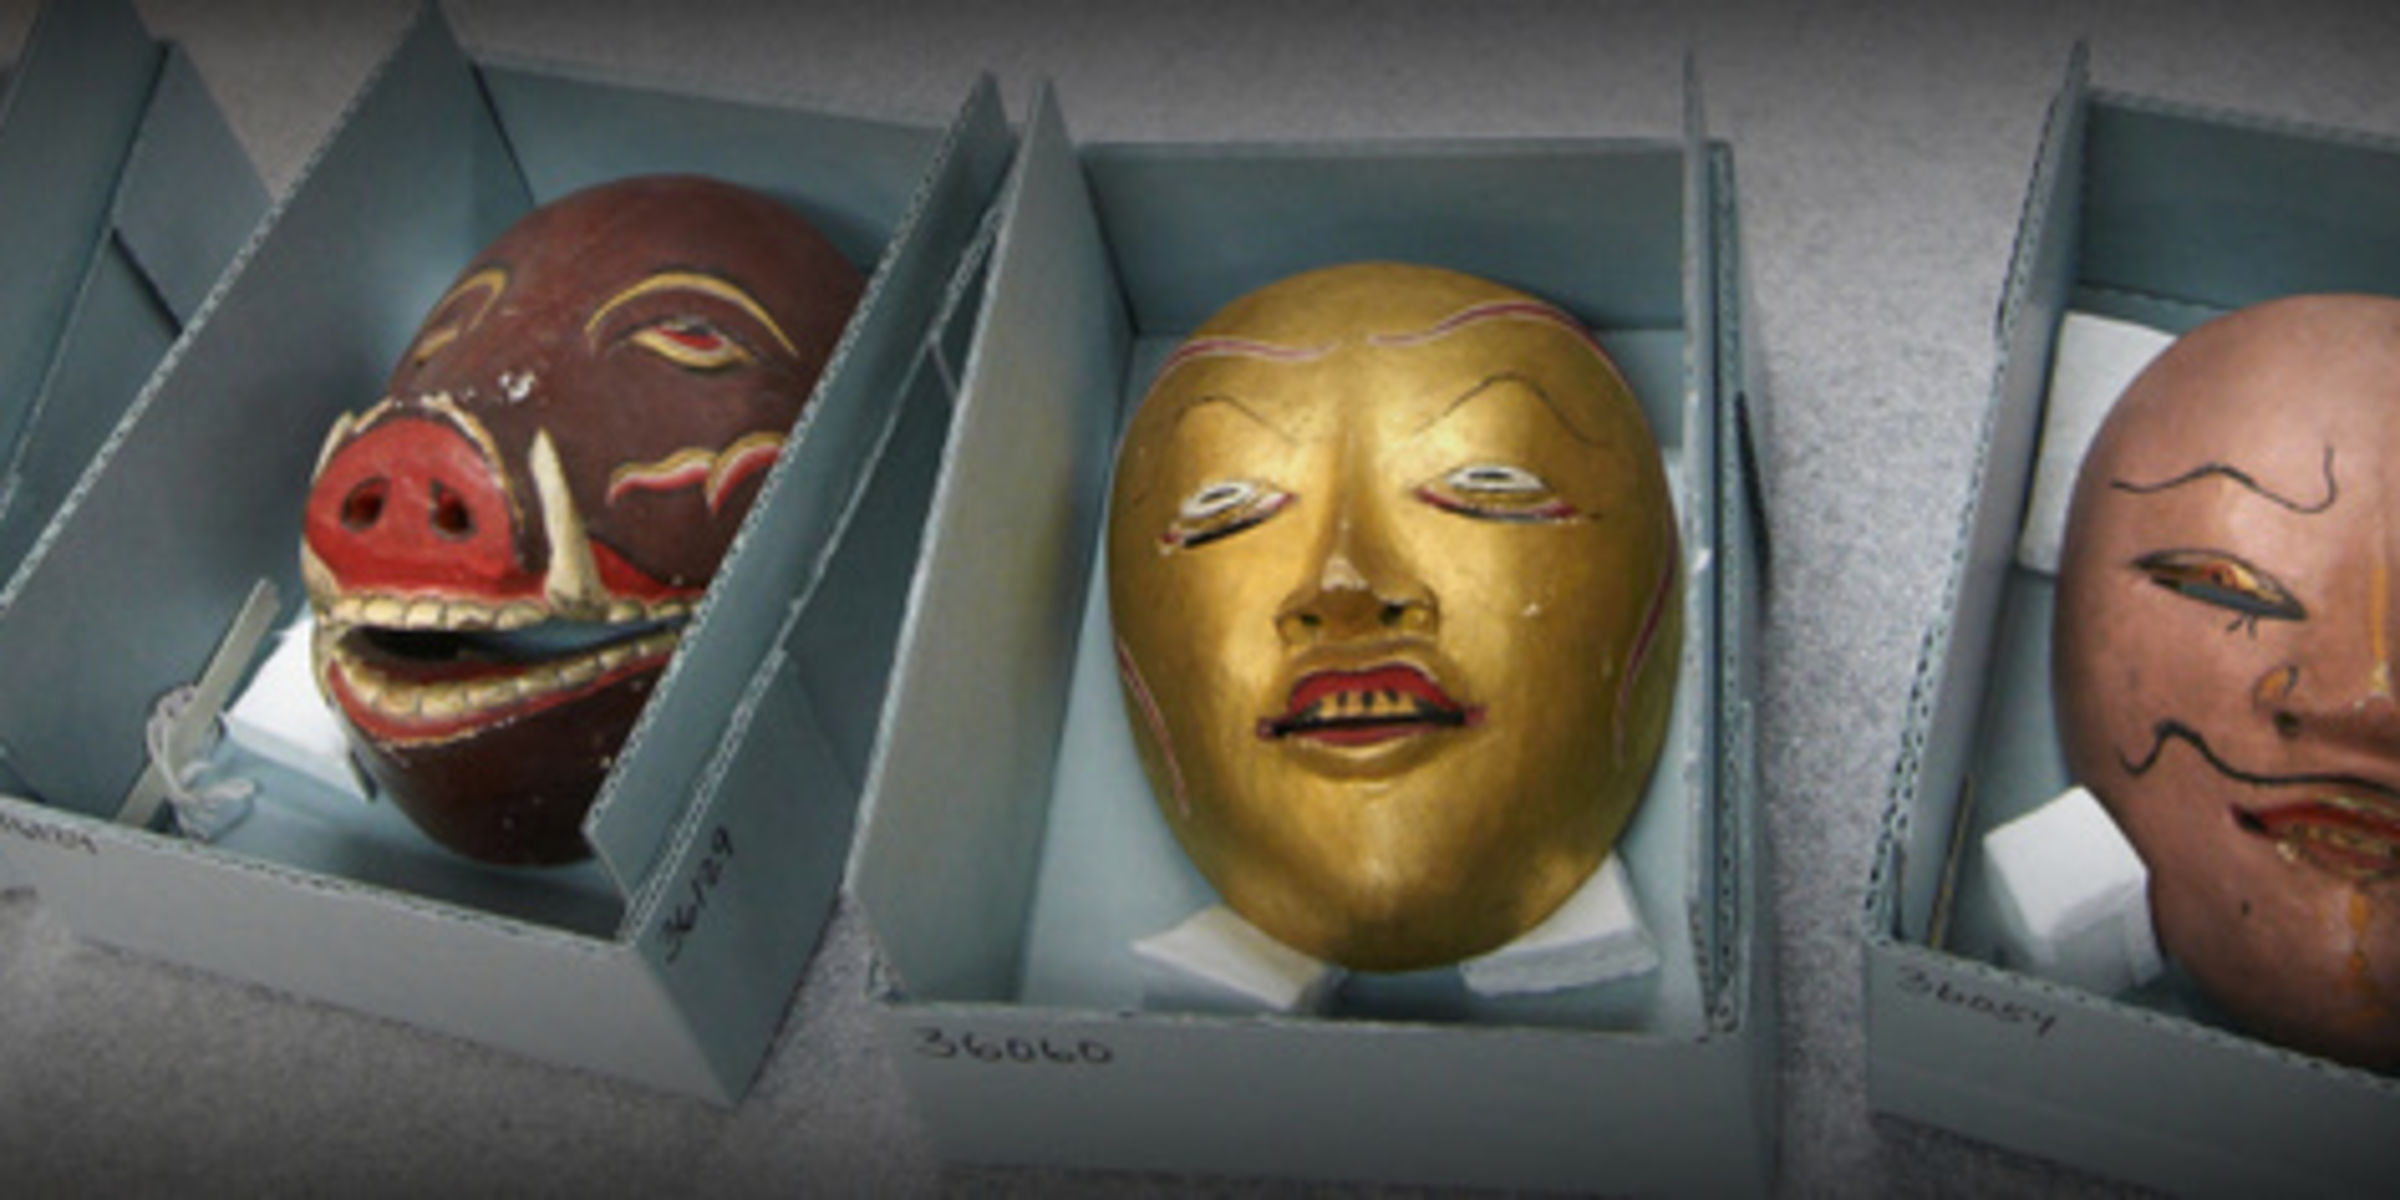 carved and painted masks in storage boxes